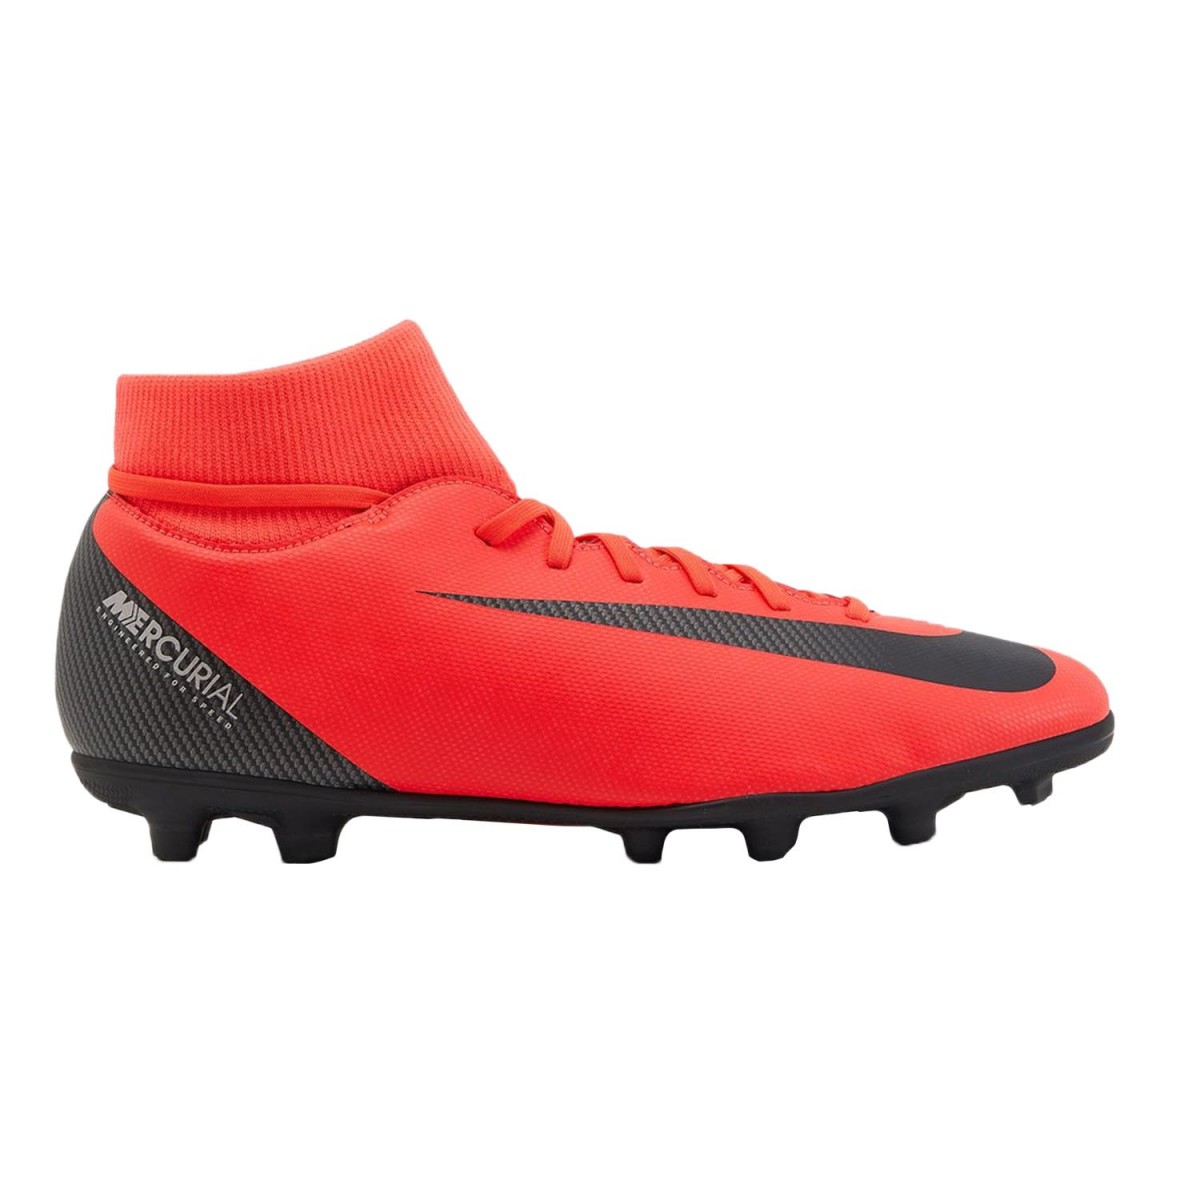 6cf1aef160a Botines Nike Cr7 Superfly 6 Club - Césped - Botines - Hombre